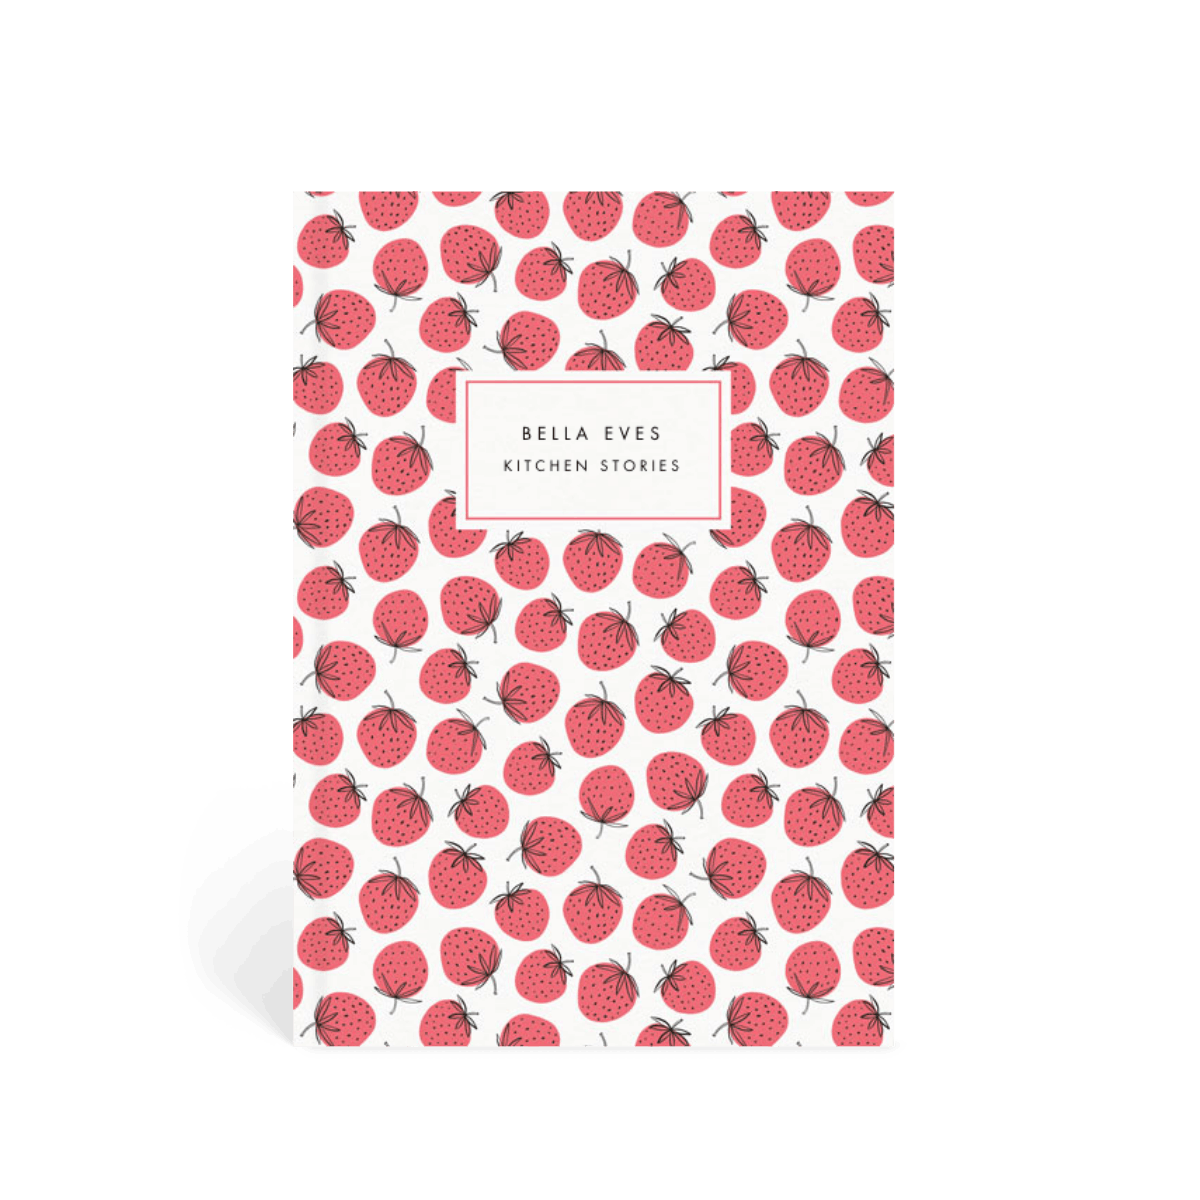 Https%3a%2f%2fwww.papier.com%2fproduct image%2f54404%2f25%2fstrawberries 13082 front 1570134071.png?ixlib=rb 1.1